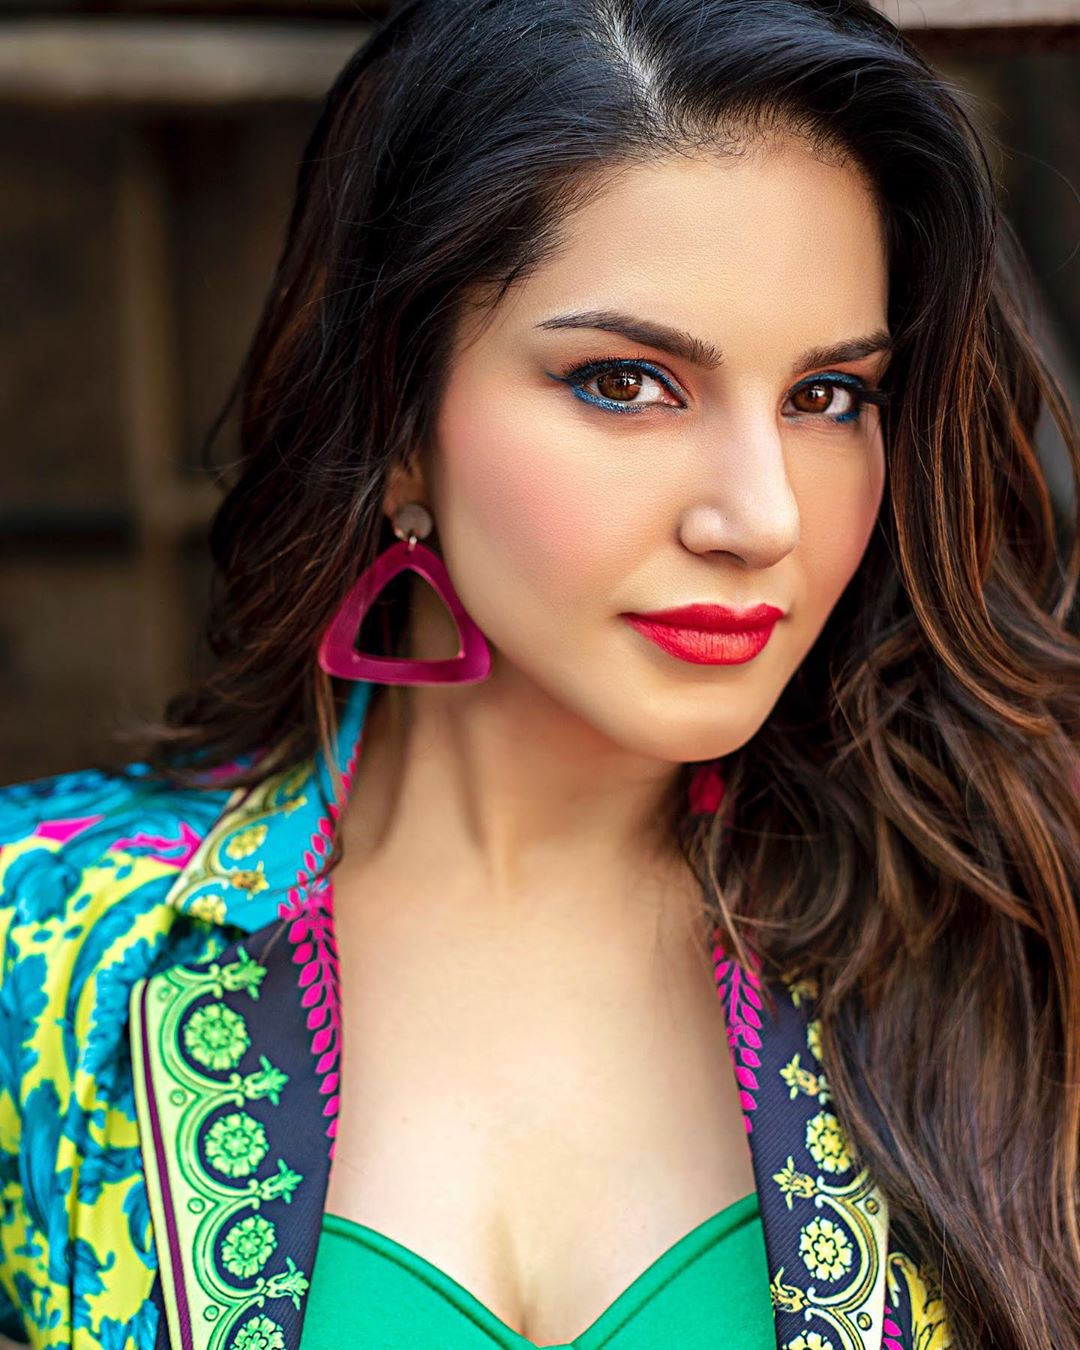 Actors Gossips: Sunny Leone Dont compare me with anyone, I feel about whats on my plate